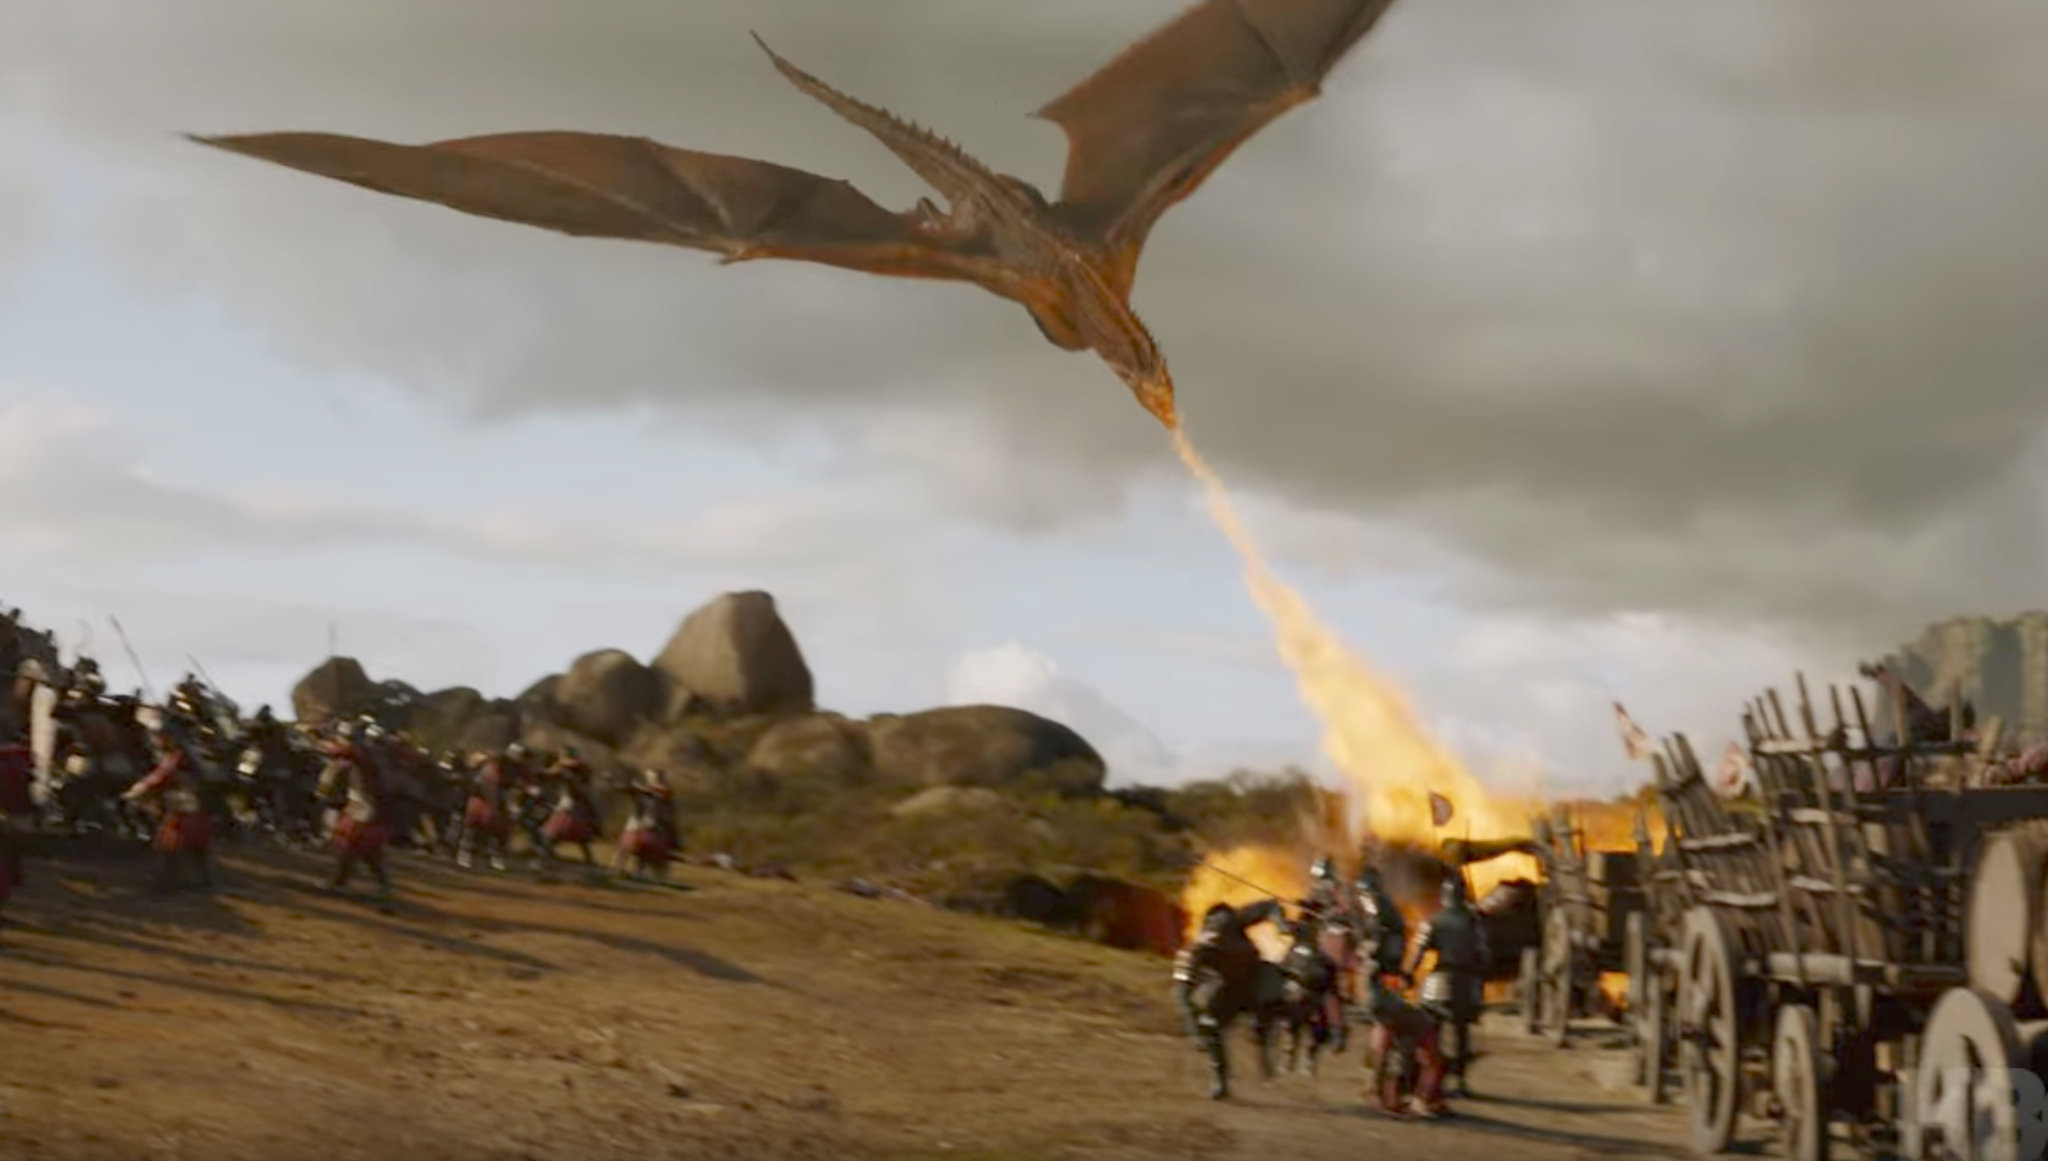 The Dragons Are Metaphors (Game of Thrones Reality) - SoPoCo net